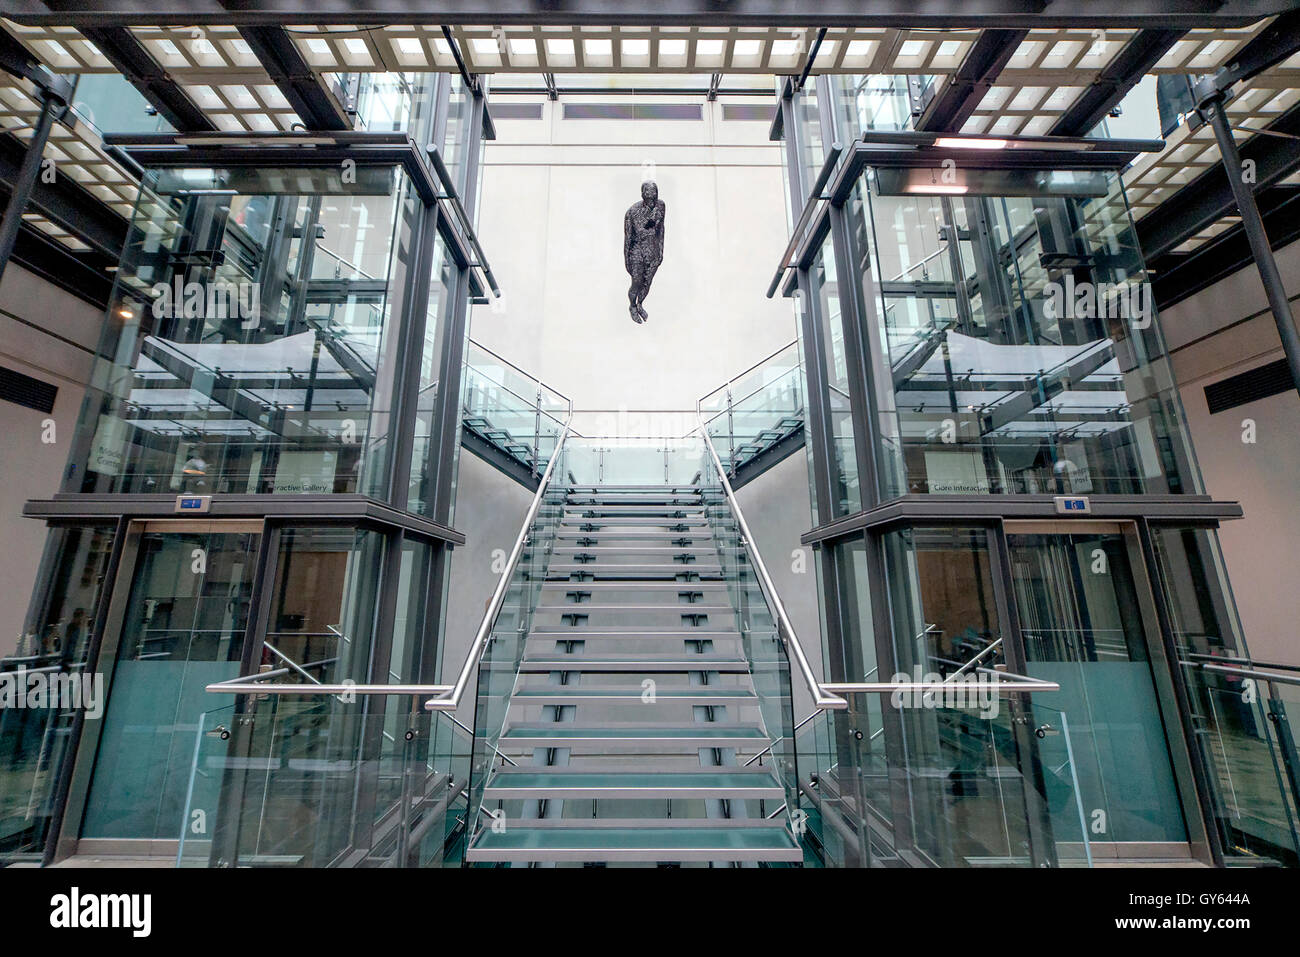 Gormley Fine Art Stock Photos & Gormley Fine Art Stock Images - Alamy